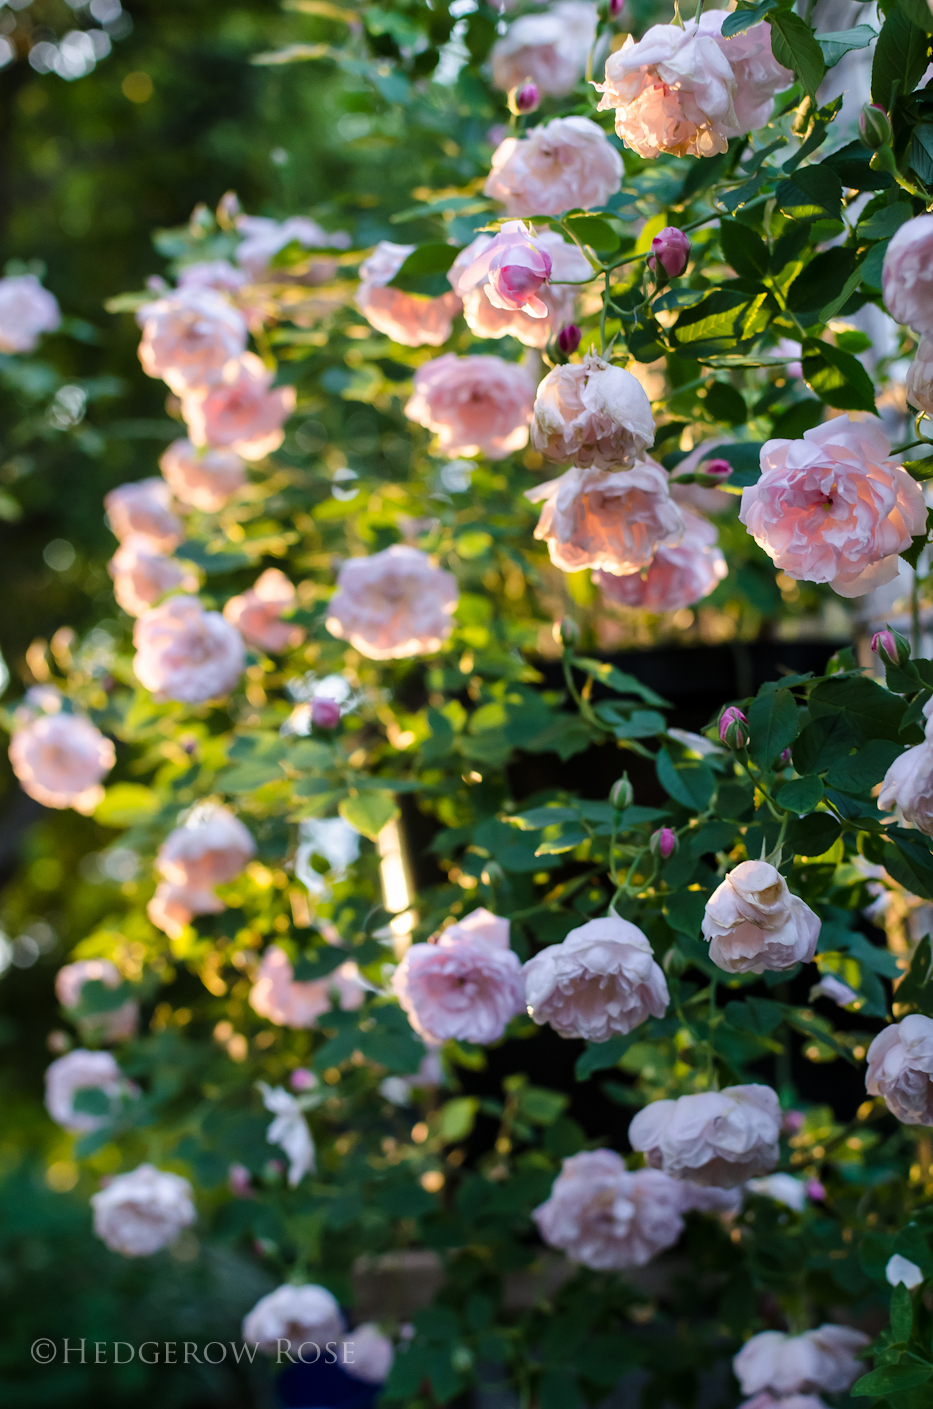 Arcata Pink Globe via Hedgerow Rose